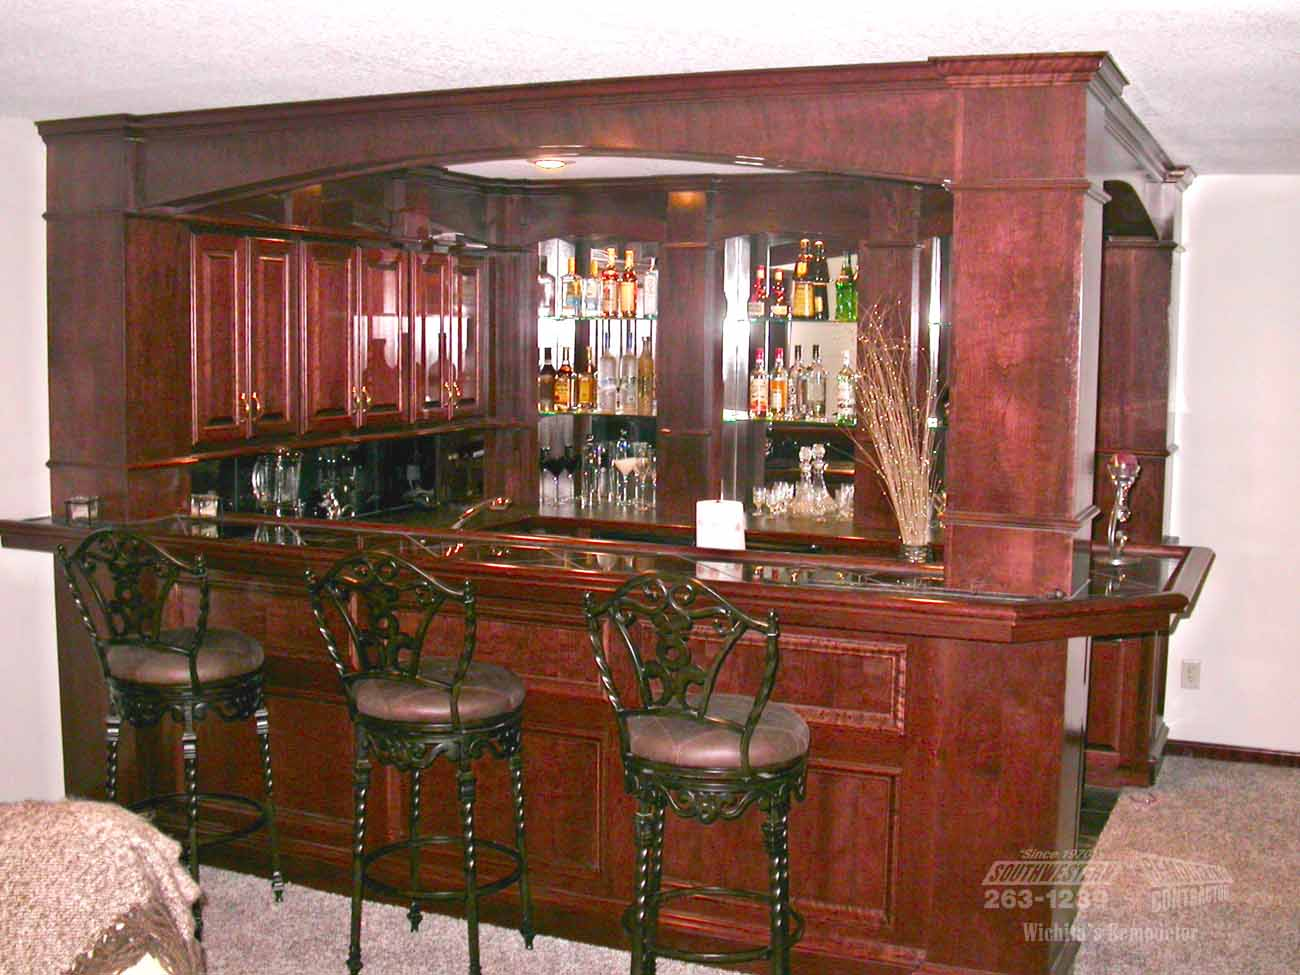 Basement bar remodeling southwestern remodeling ks - Southwestern home design and remodeling ...